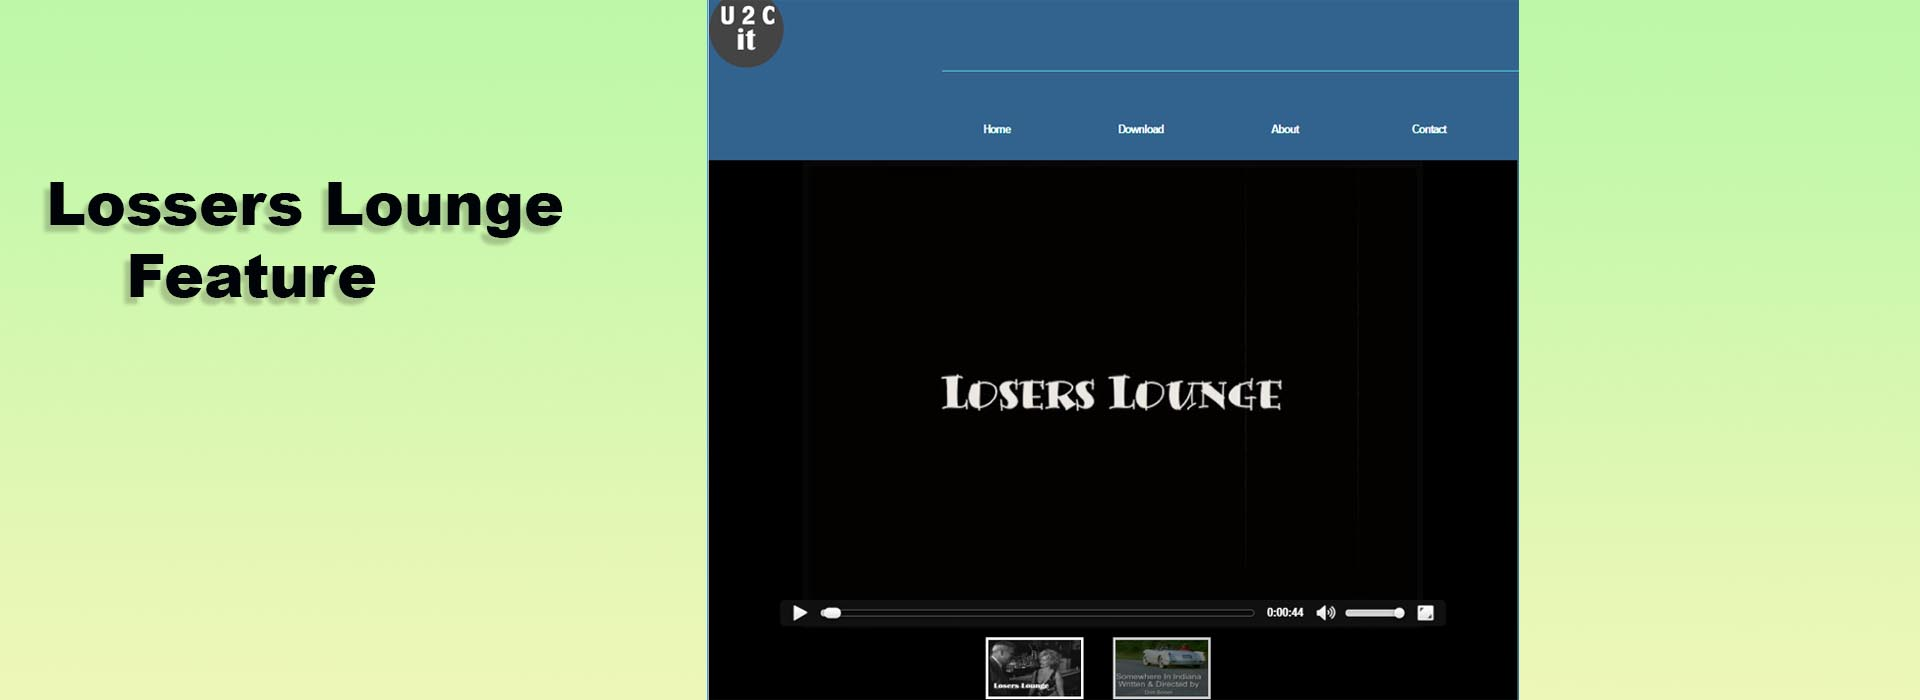 Losers Lounge Feature